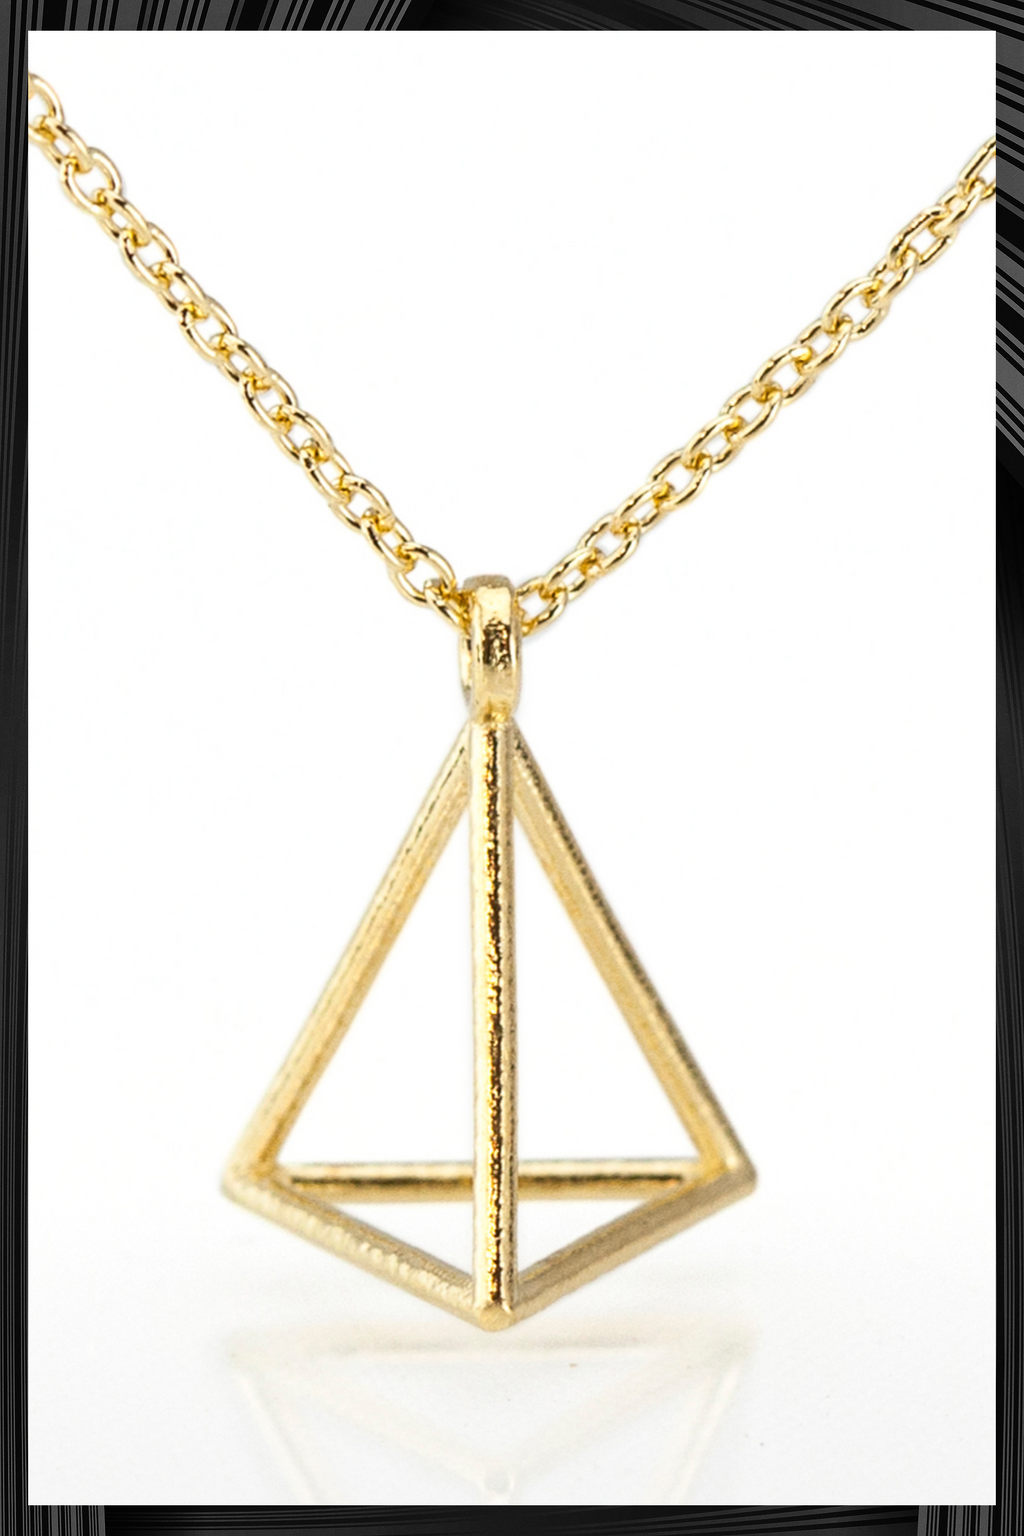 Petite Triangle Necklace | Free Delivery - Quick Shipping